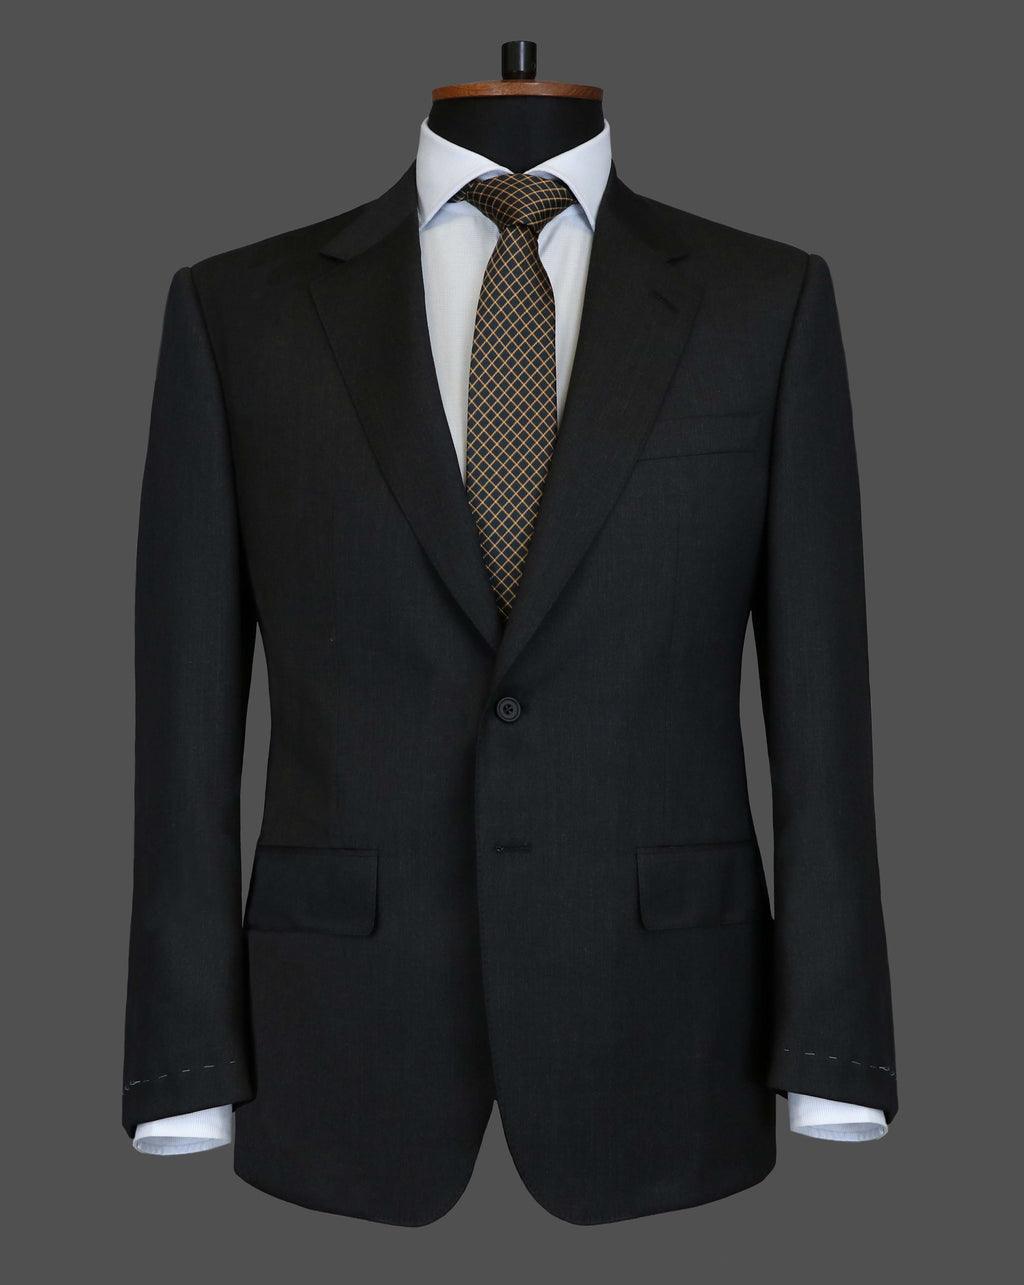 TLA021 - Plain Grey Suit